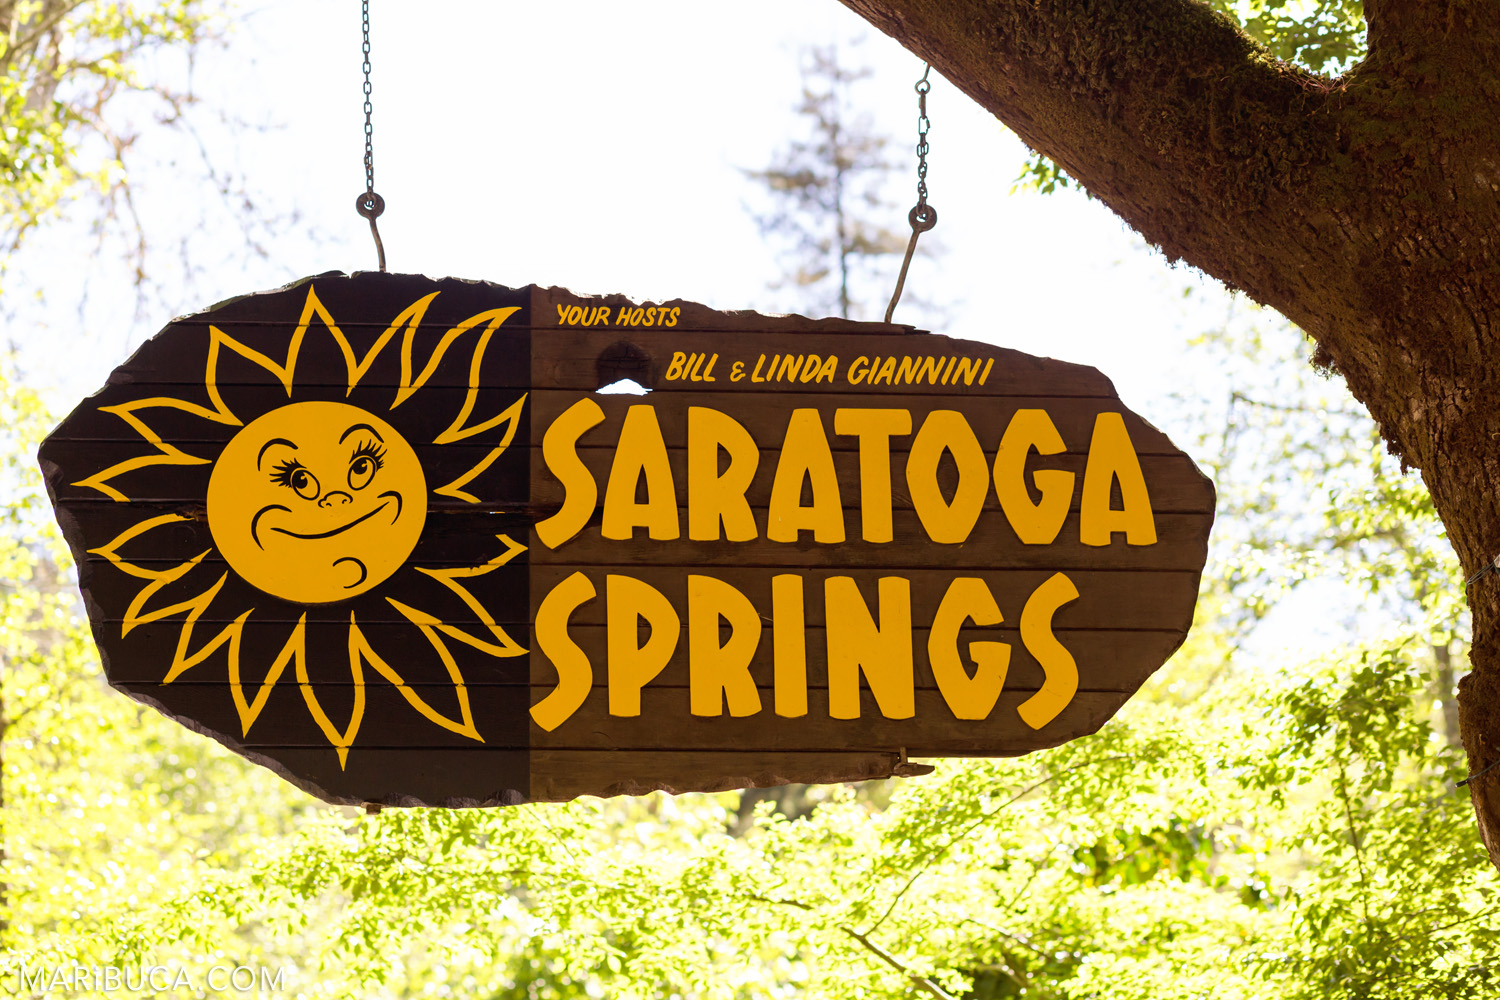 Saratoga Springs Venue Wedding yellow sign with the sun cartoon.